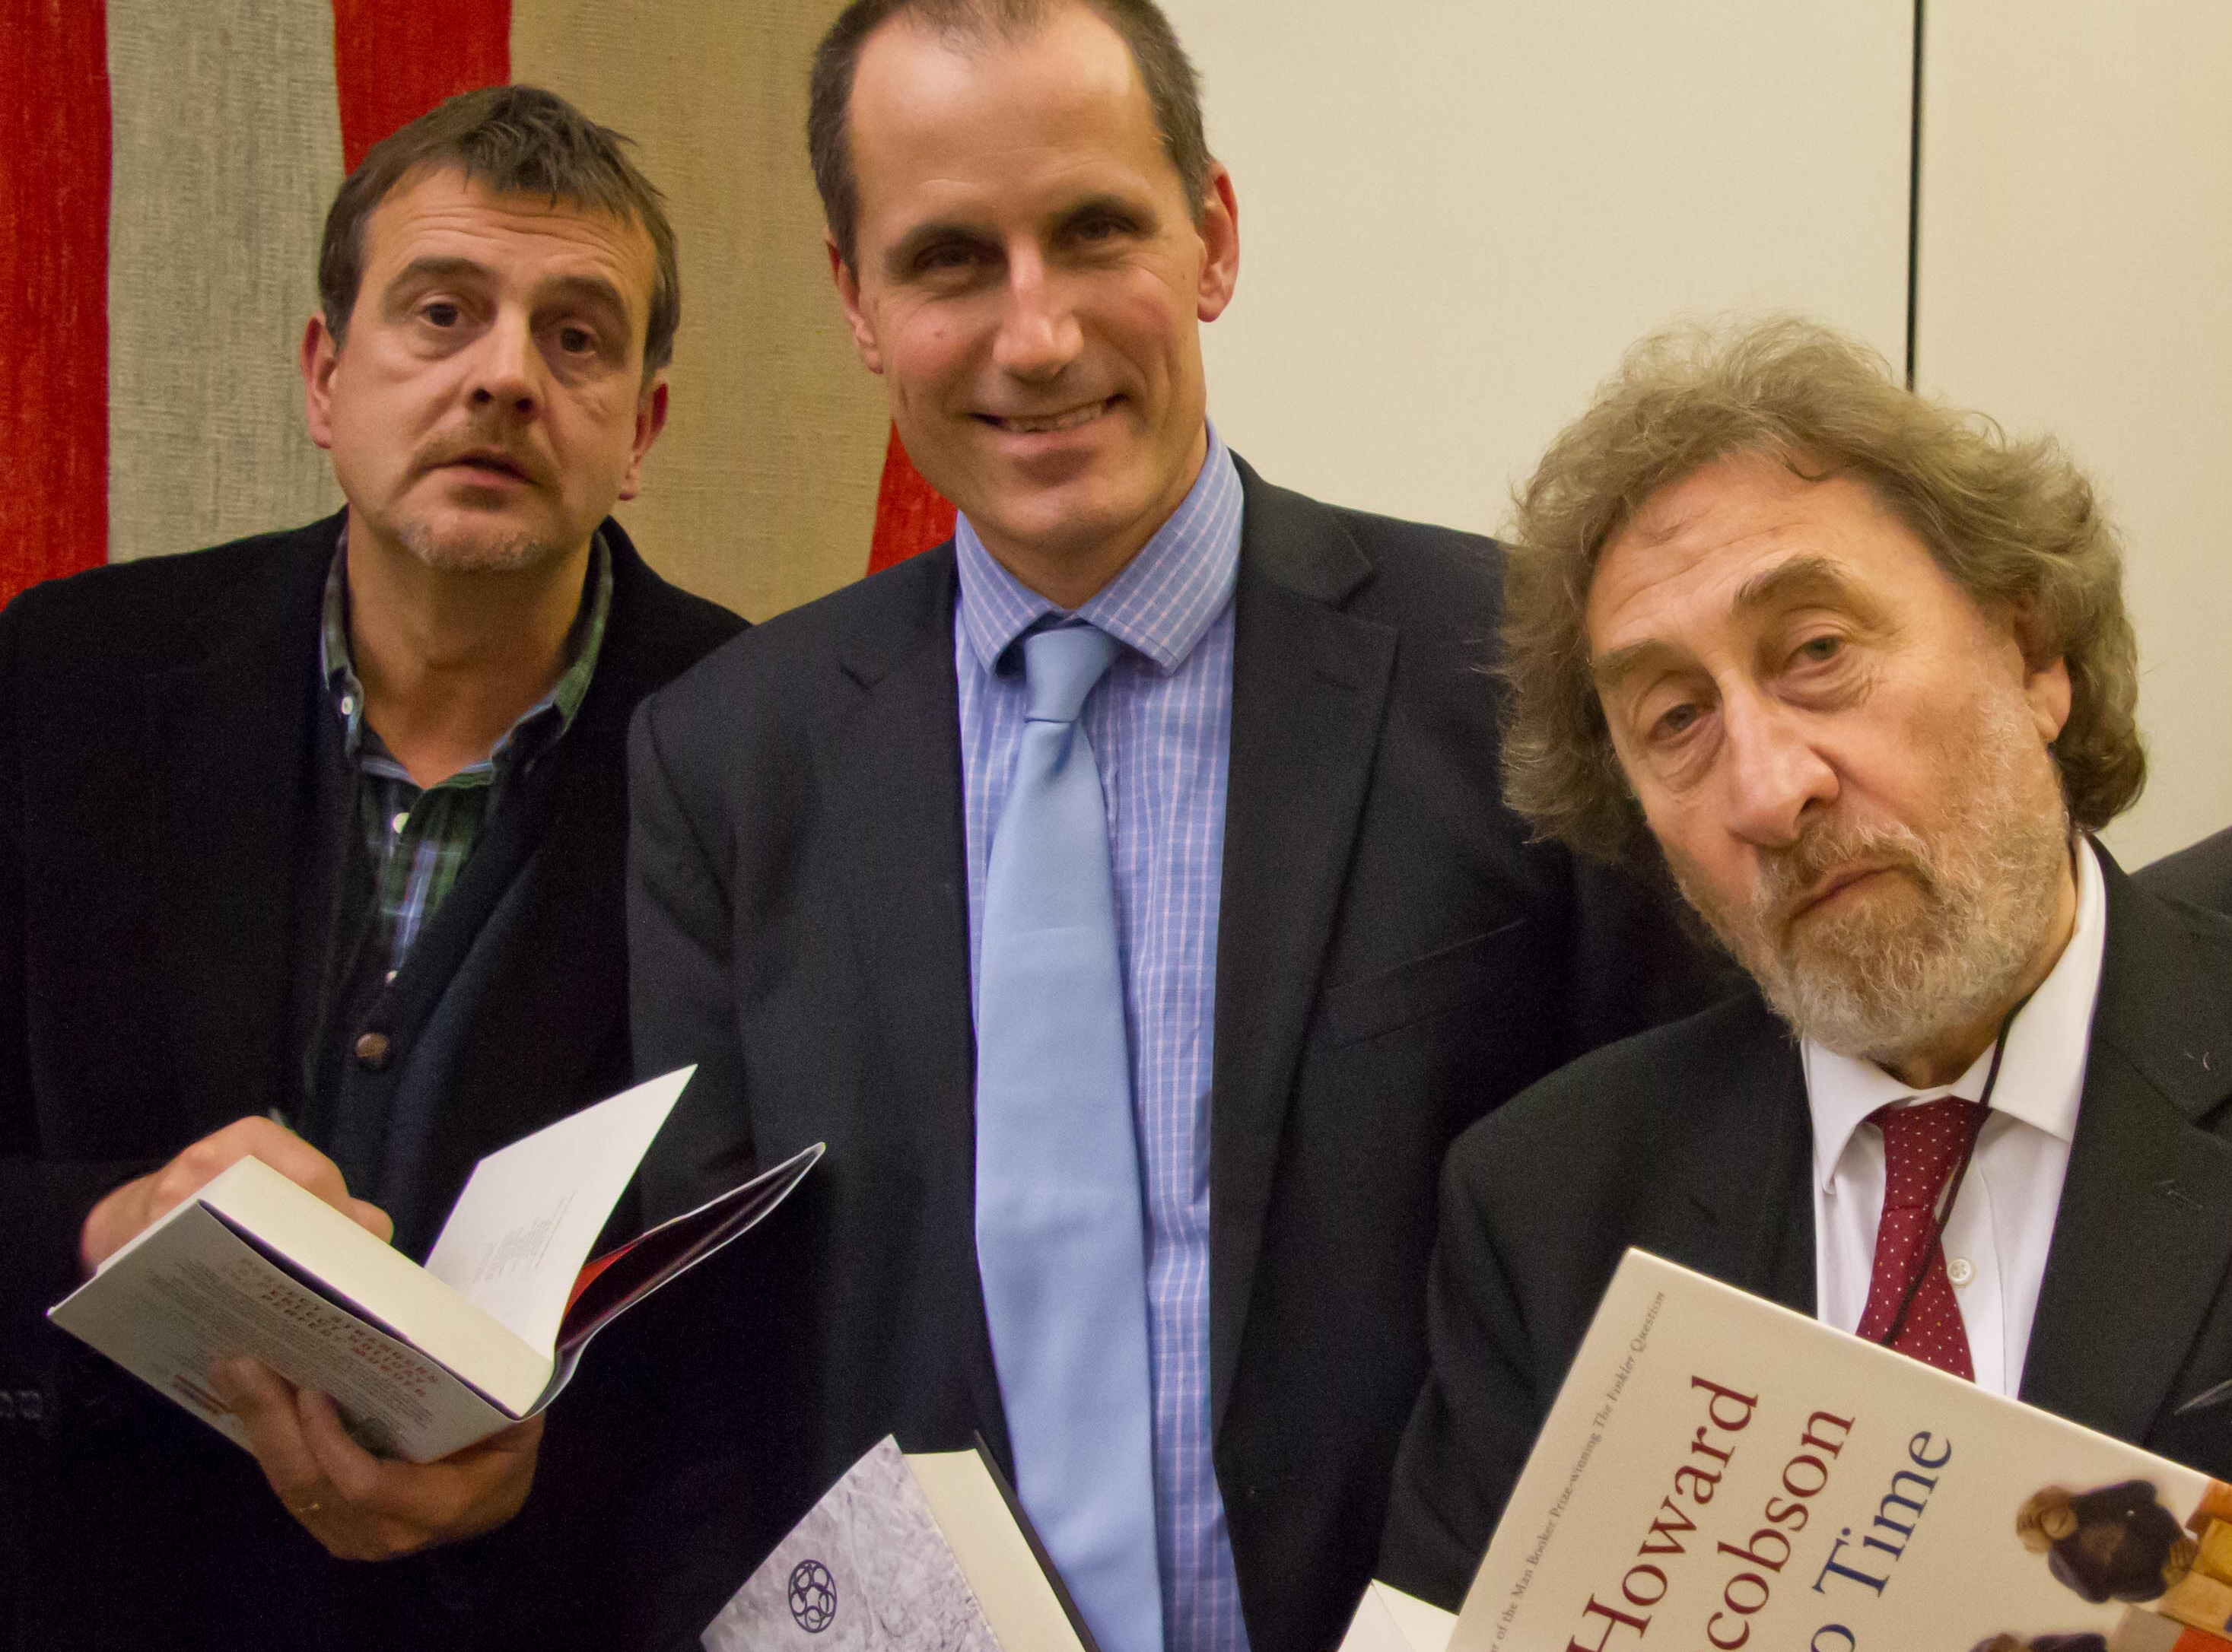 Sefton Central Labour MP Bill Esterson with renowned authors Mark Billingham and Howard Jacobson.